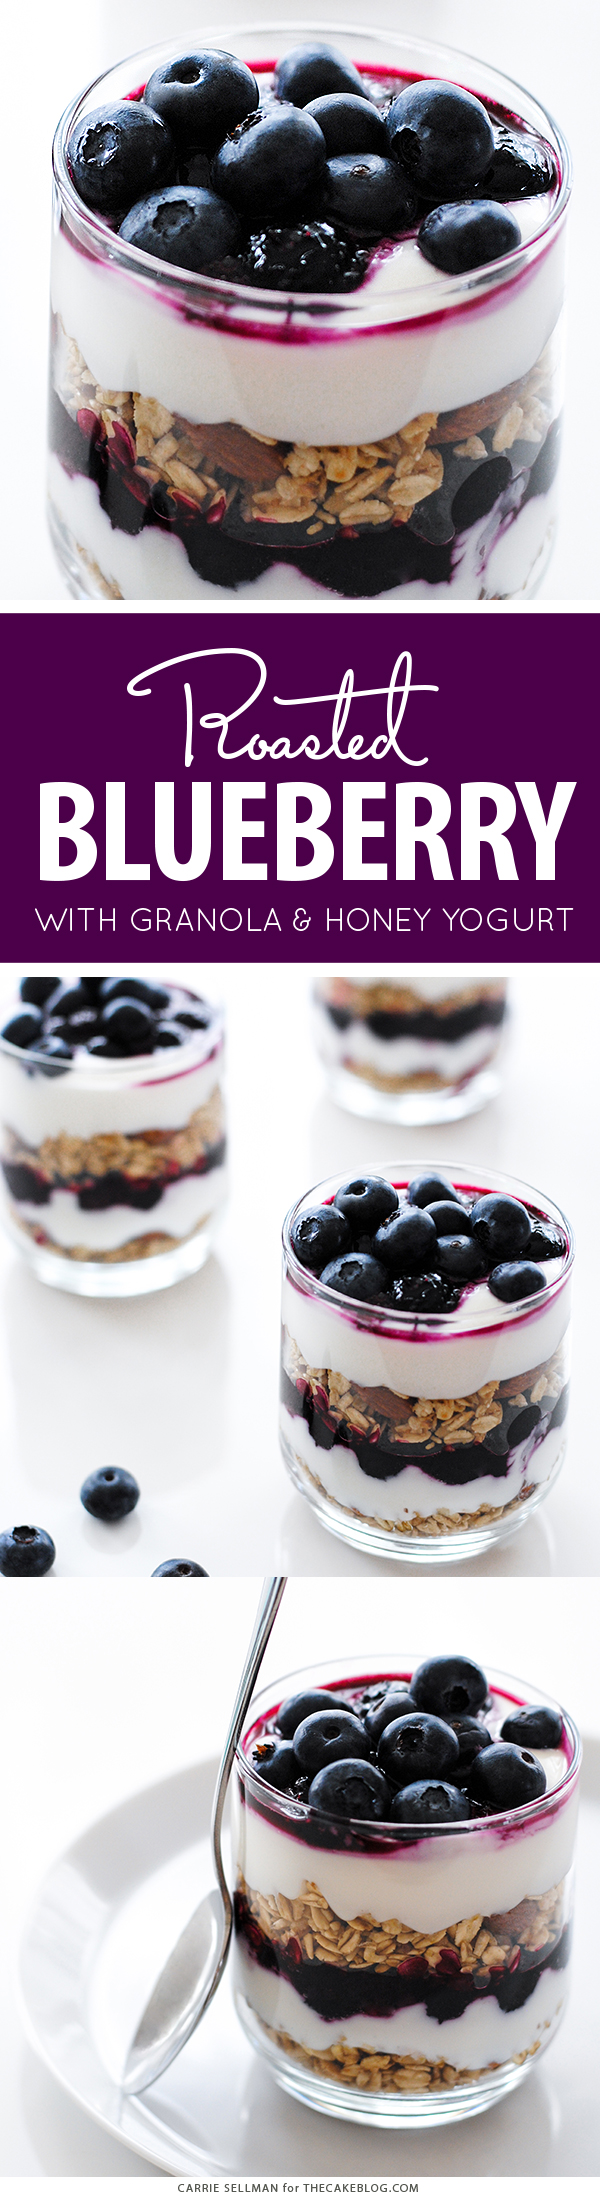 Blueberry Breakfast Parfaits with layers of roasted blueberries, granola and honey yogurt | by Carrie Sellman for TheCakeBlog.com